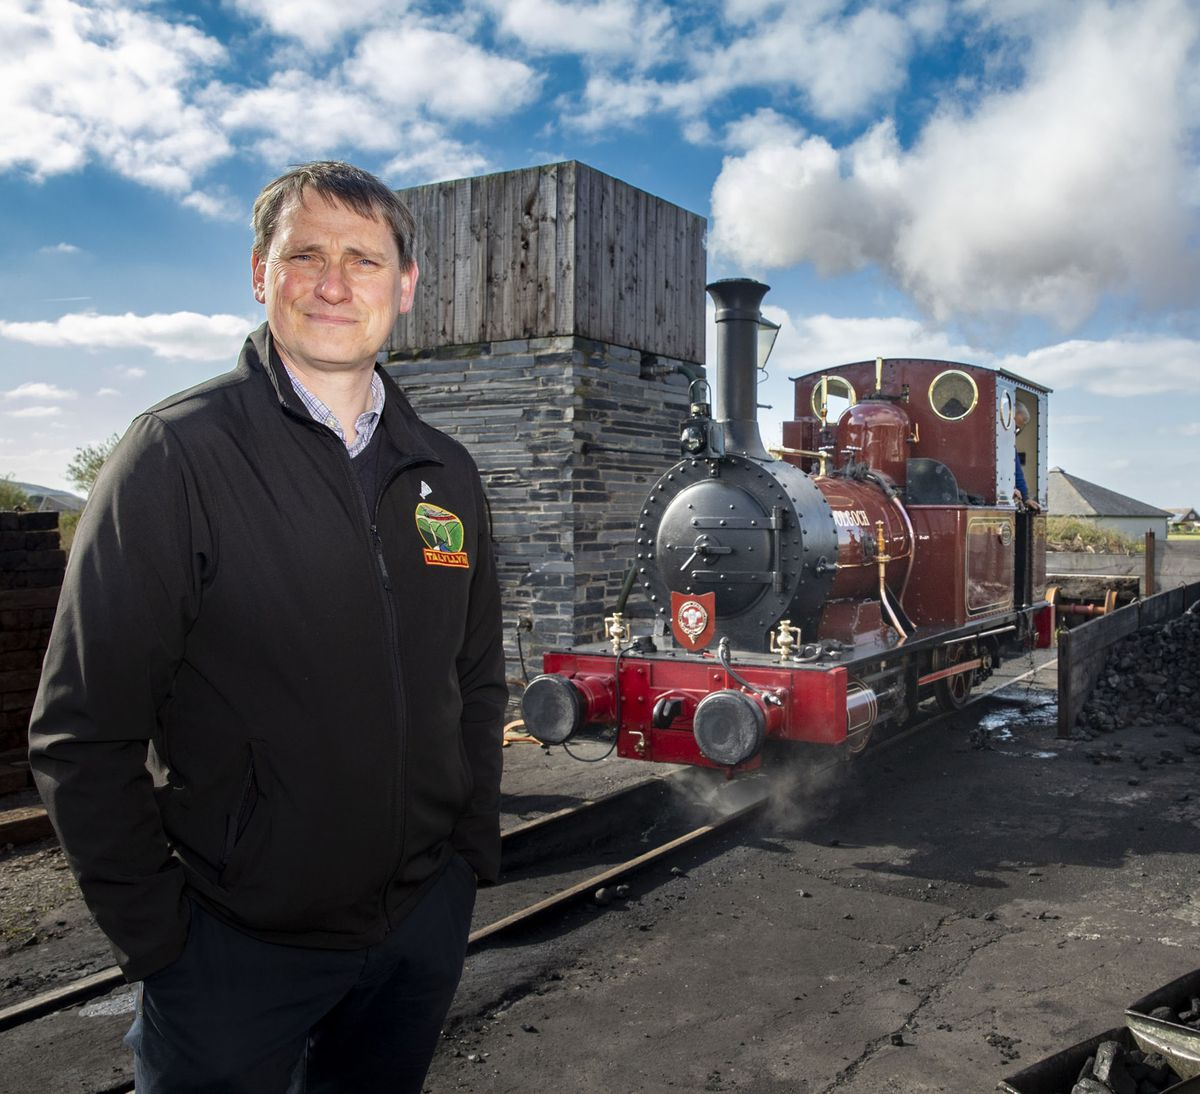 Stuart Williams, General Manager at Talyllyn Railway Picture Mandy Jones